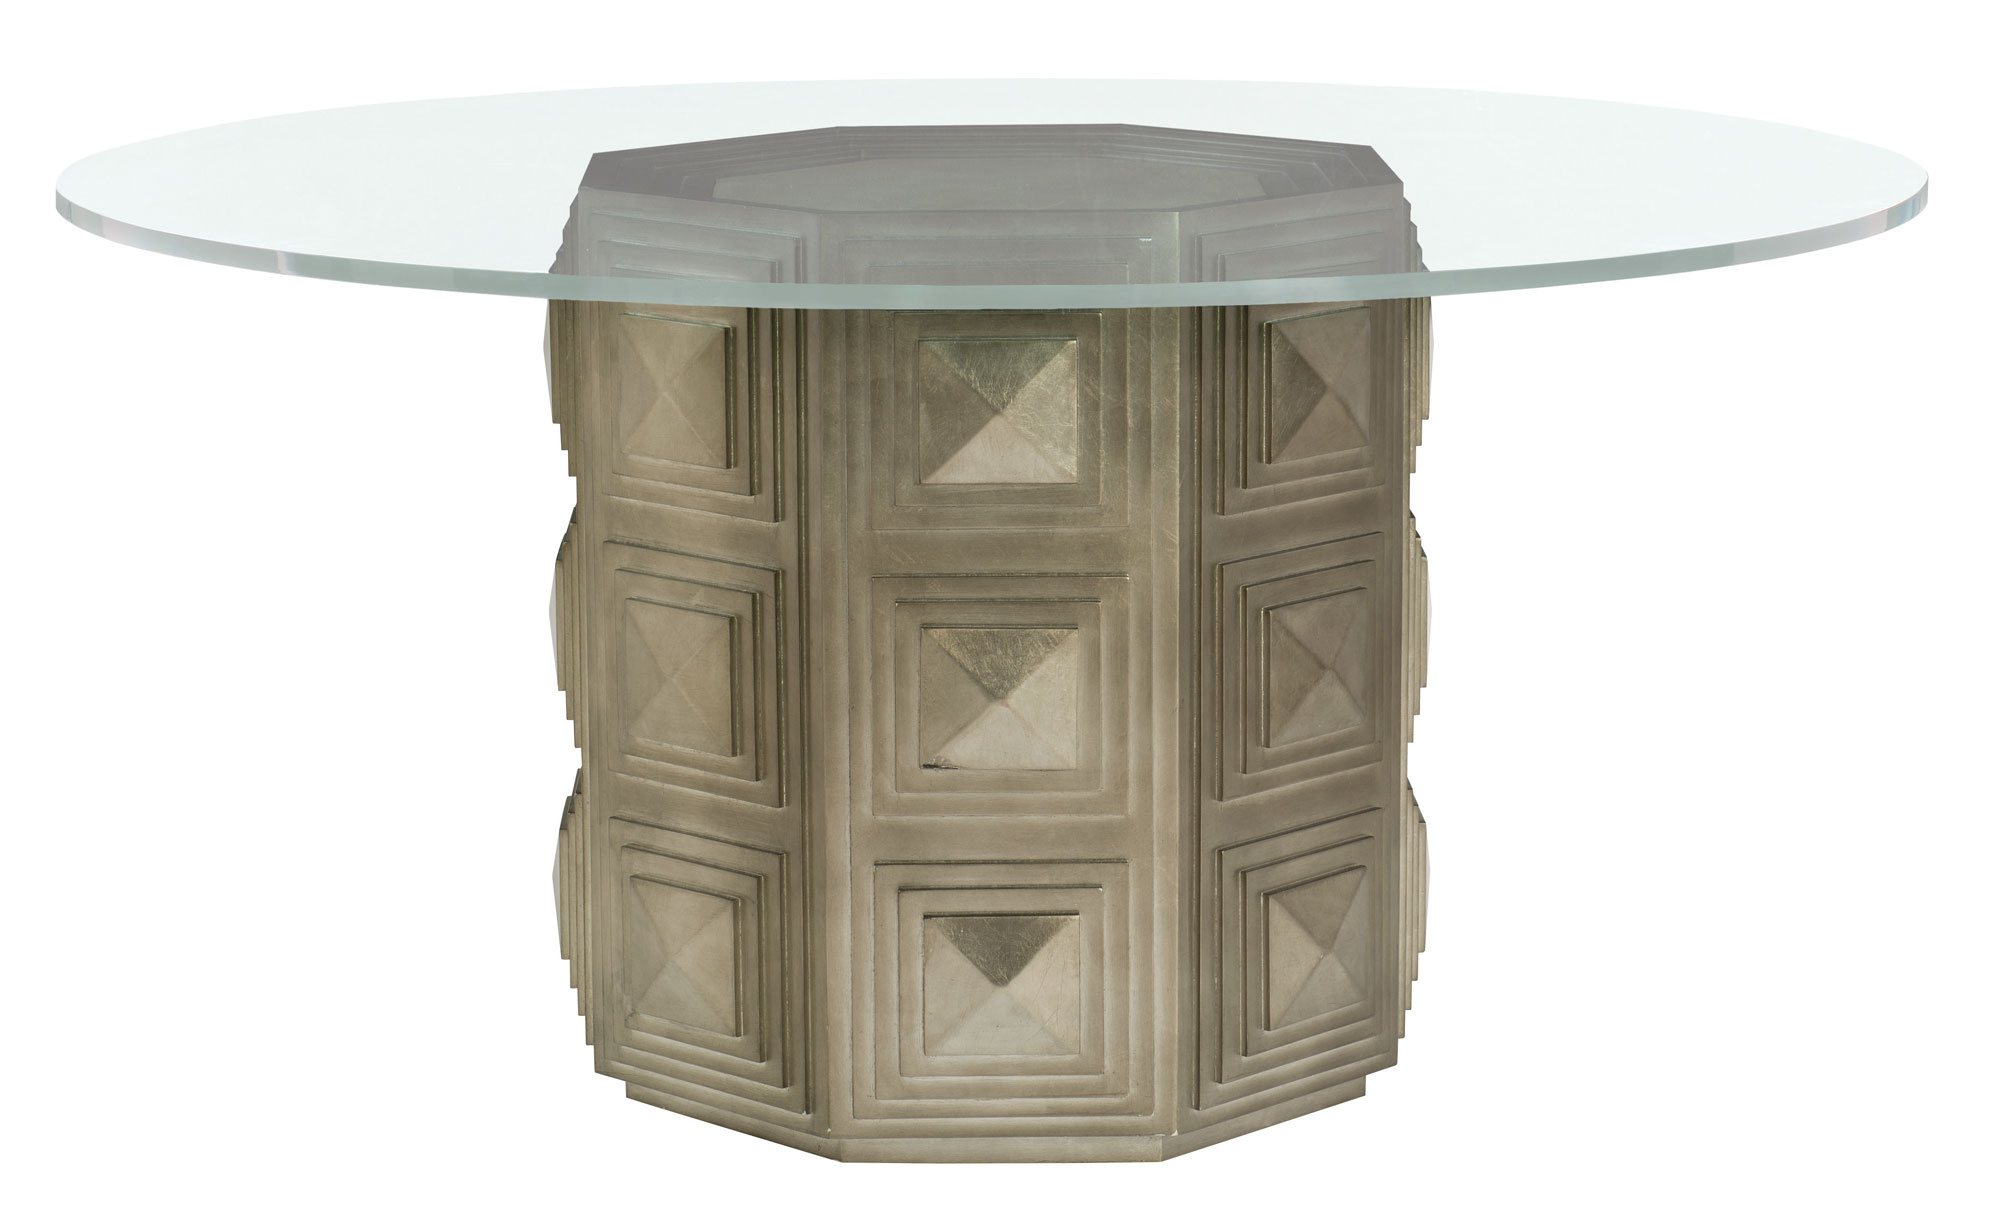 mosaic dining room items - Dining Room Items